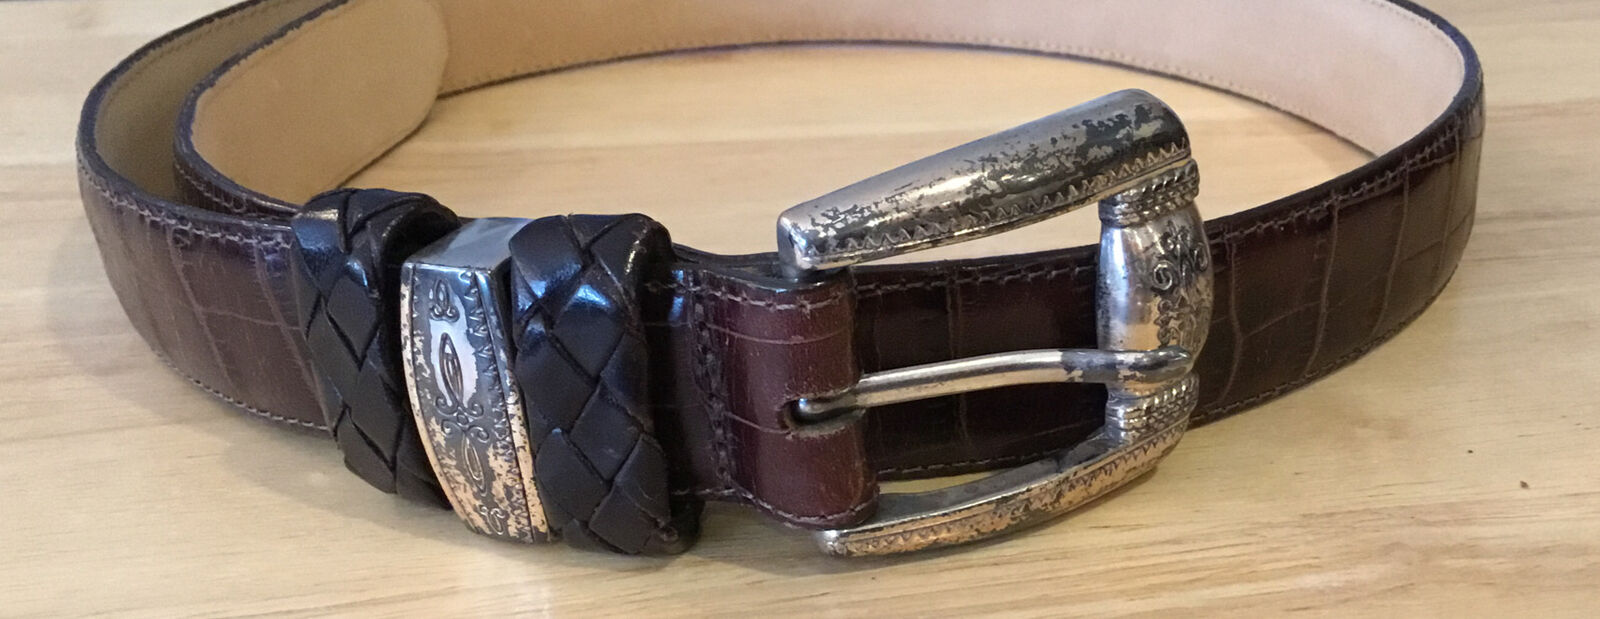 Brighton Women's Belt Size M Croco Emboss Brown Leather, S24709 Made in USA